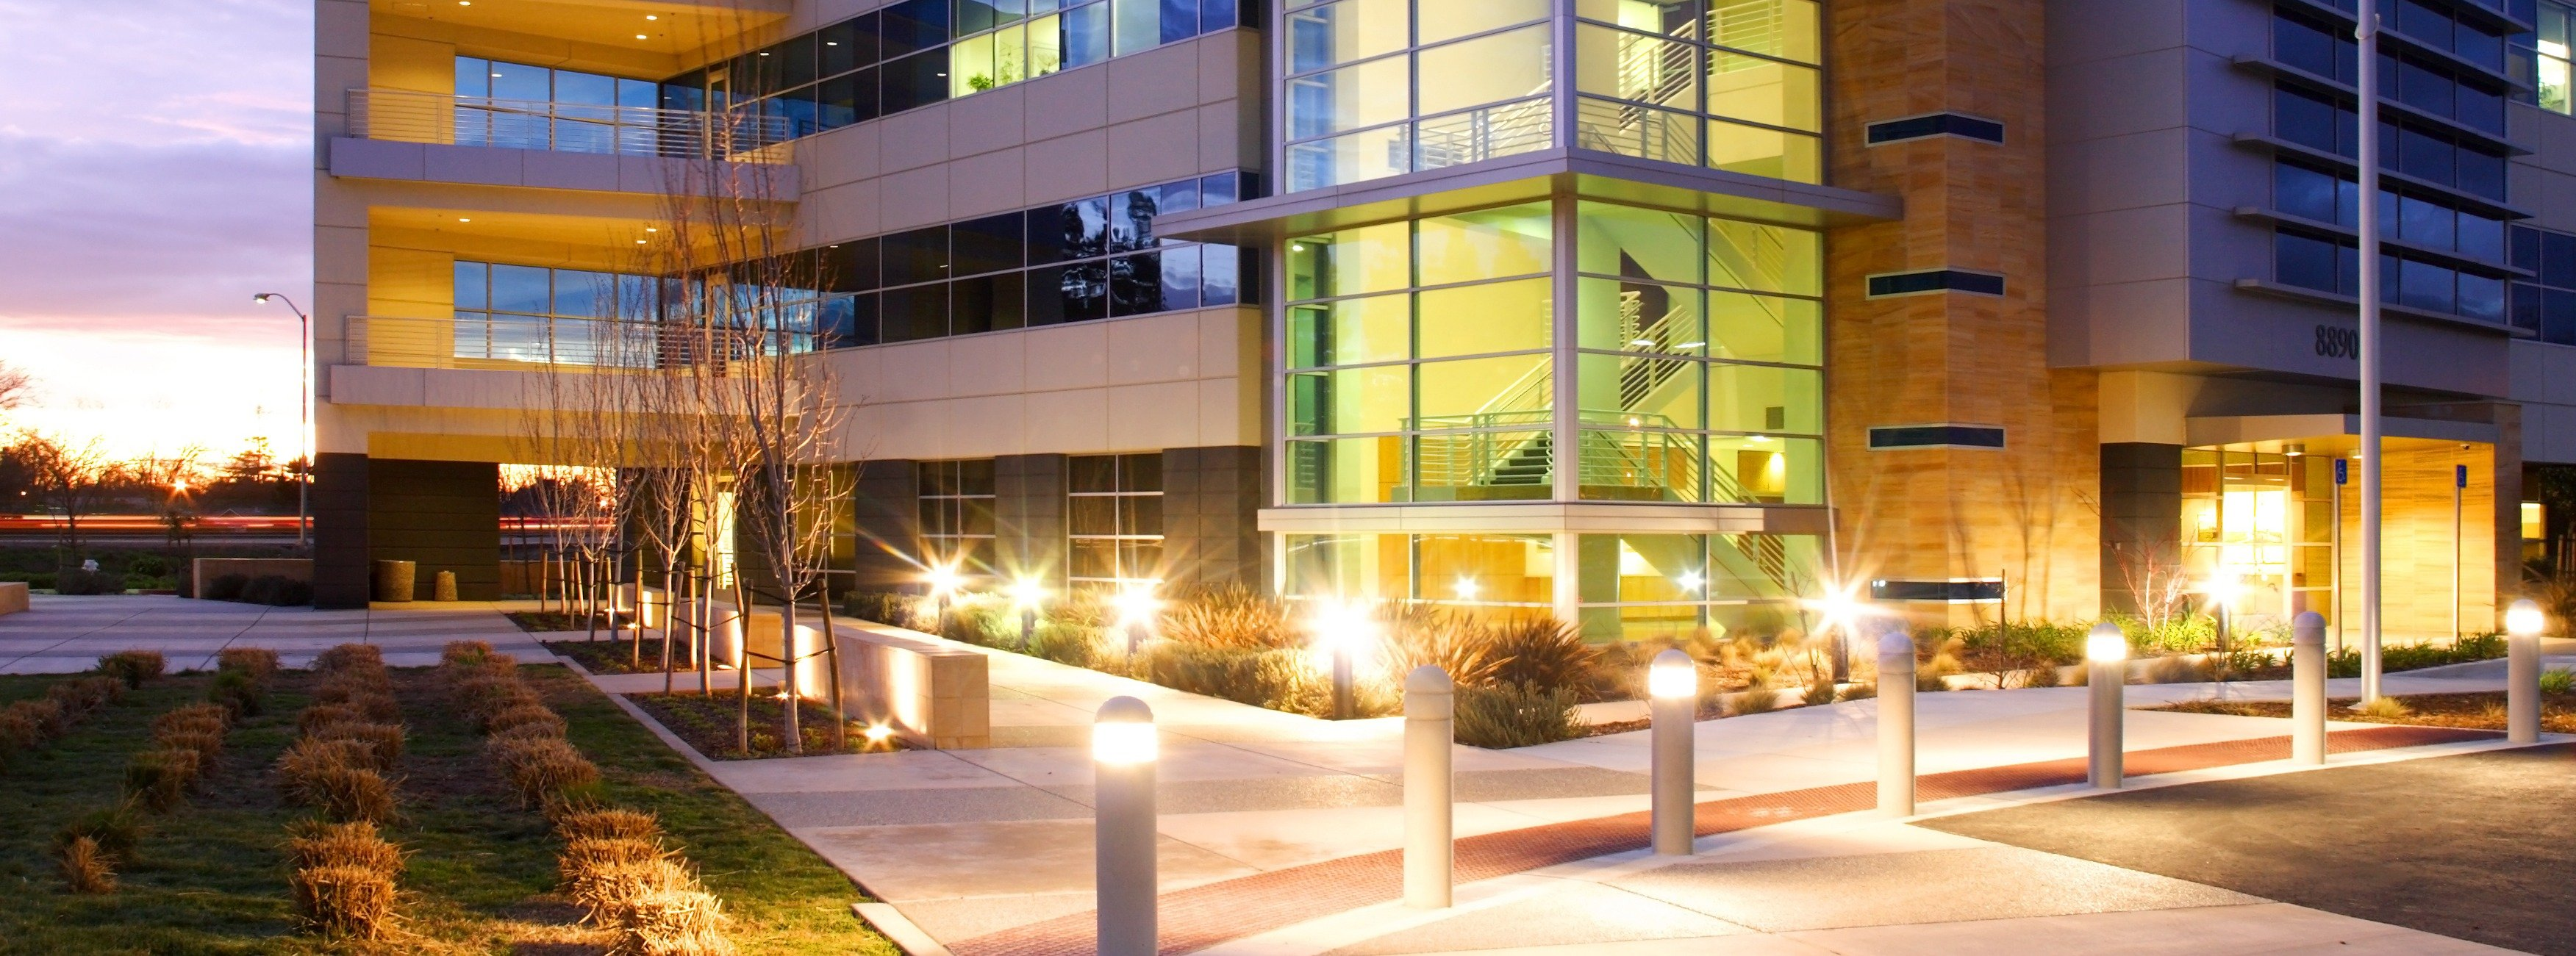 building with commercial landscape lighting